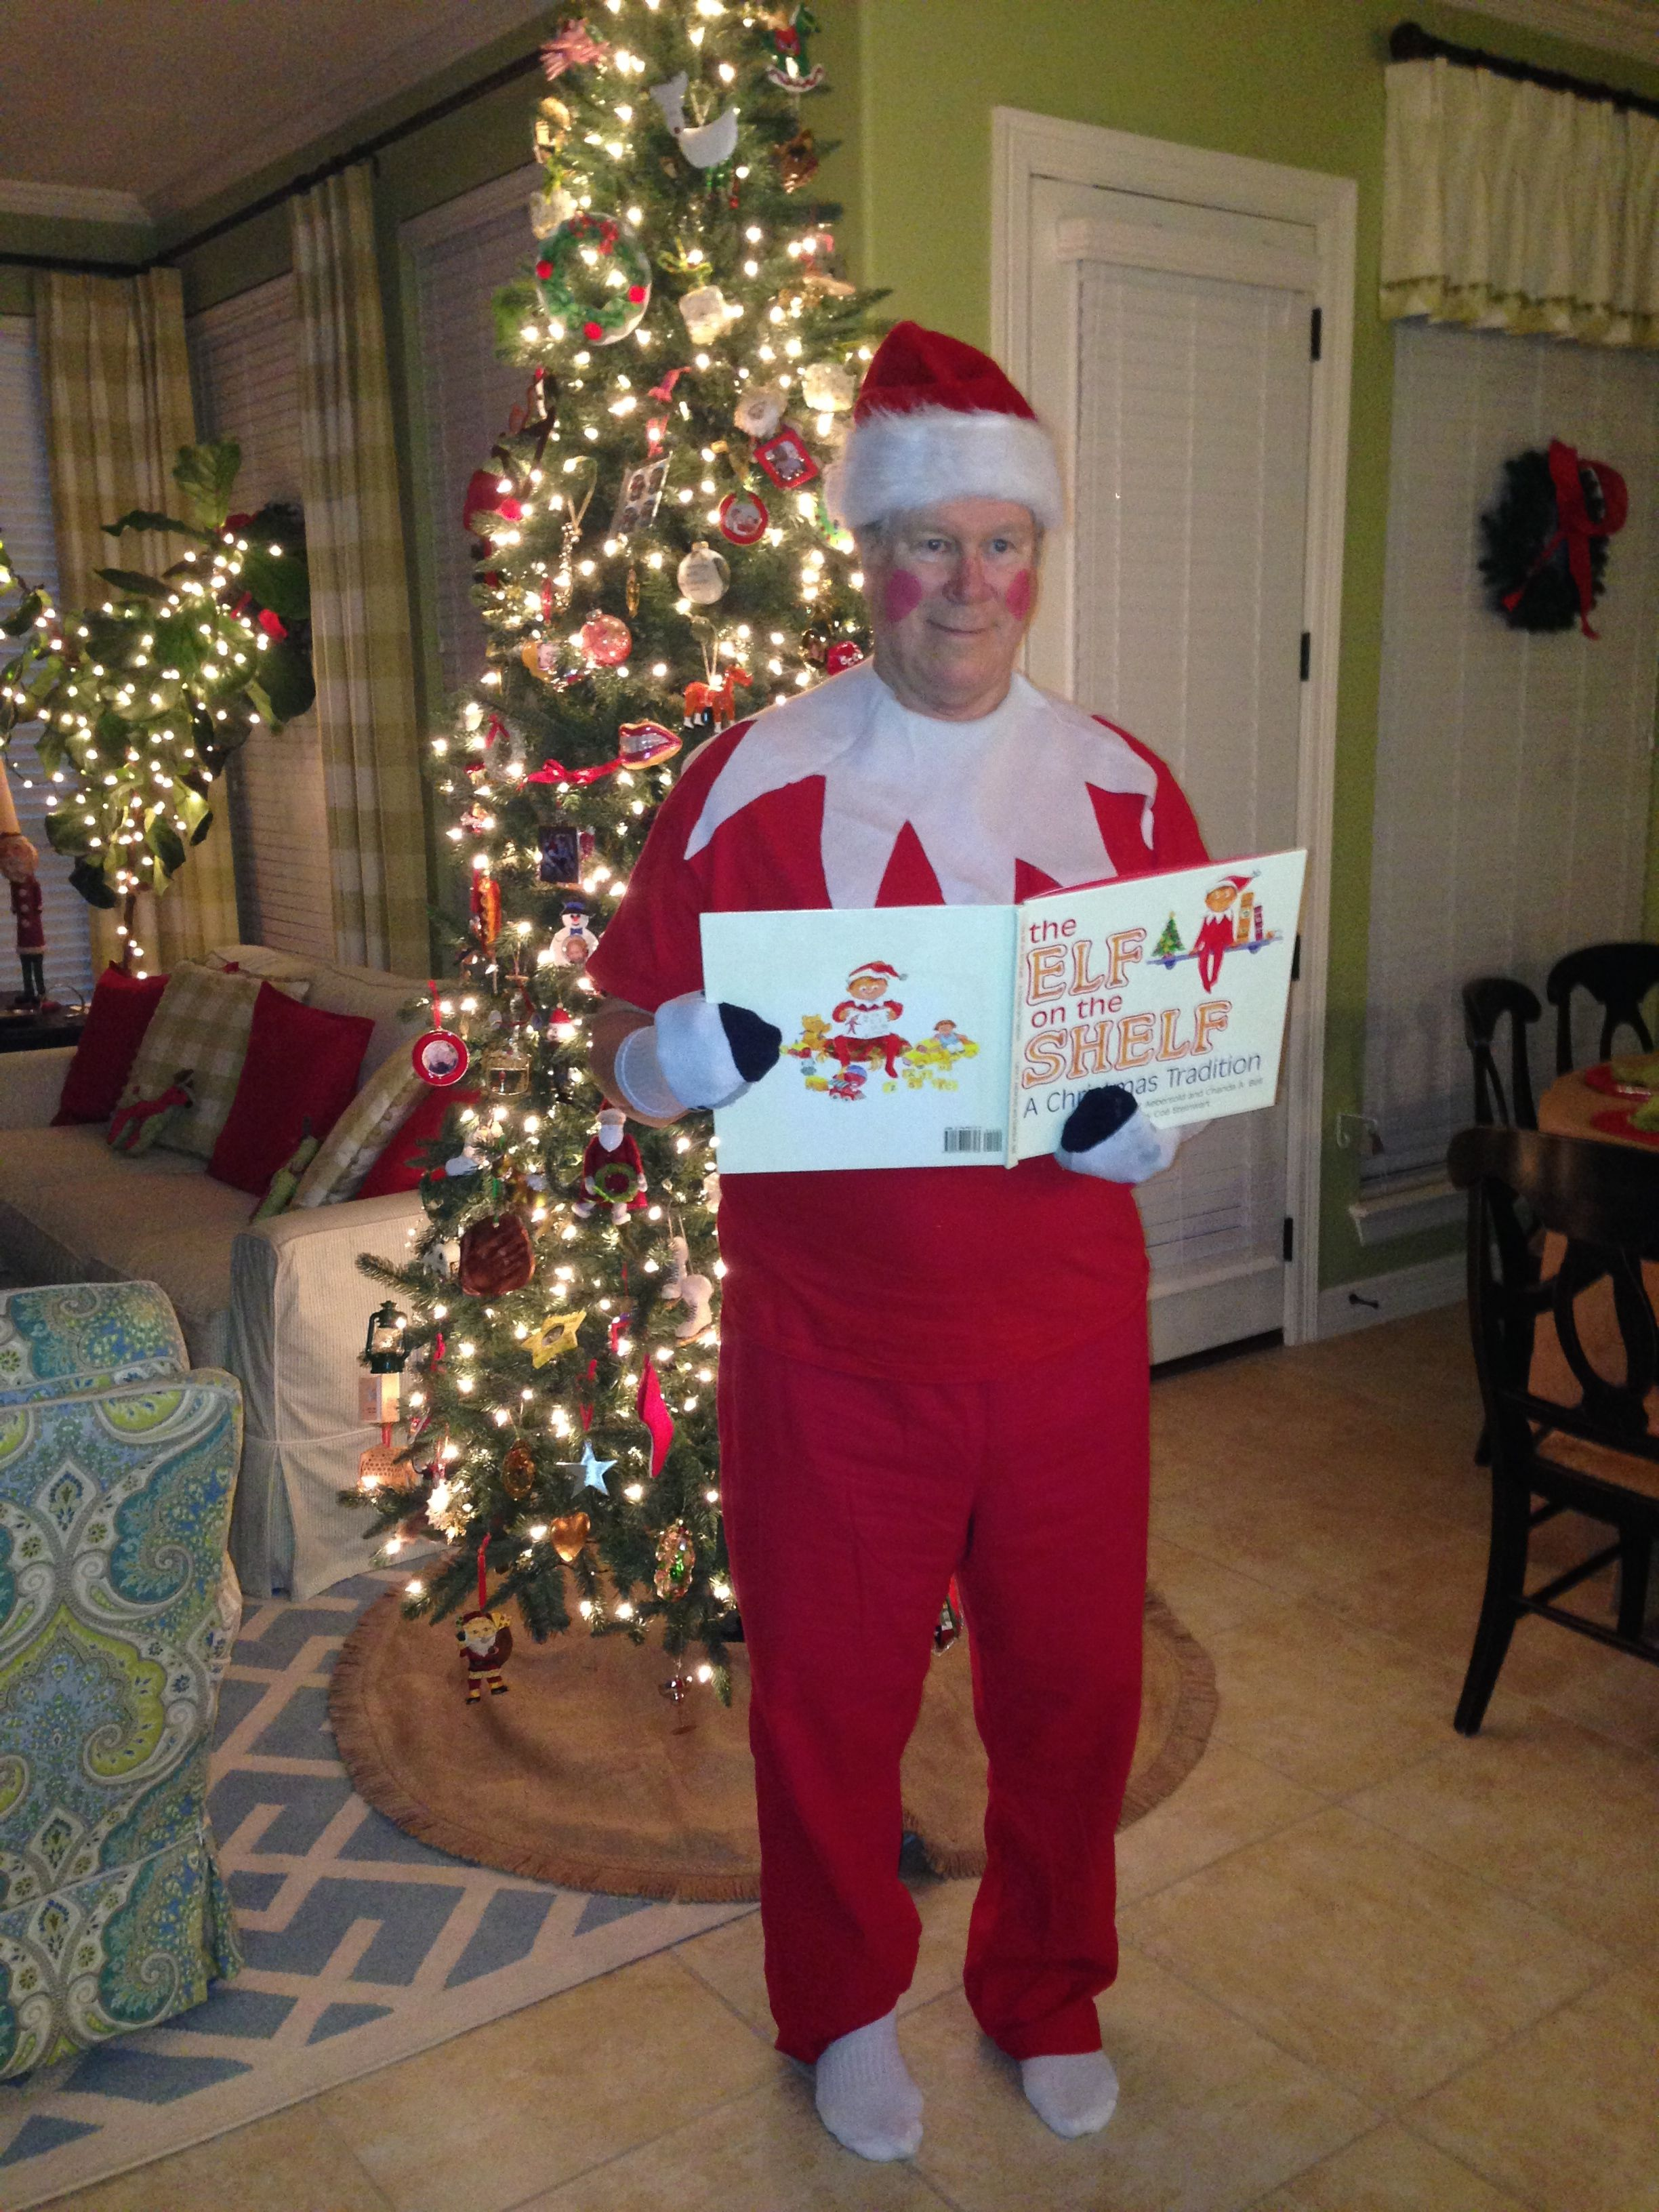 #DomestiKate Grandpa takes Elf on a Shelf to a new level.  Where is Grandpa hiding?   So much fun last Christmas.   Hard not to laugh at dad with socks on his hands and lipstick cheeks.  Funny Christmas Eve game for older kids.